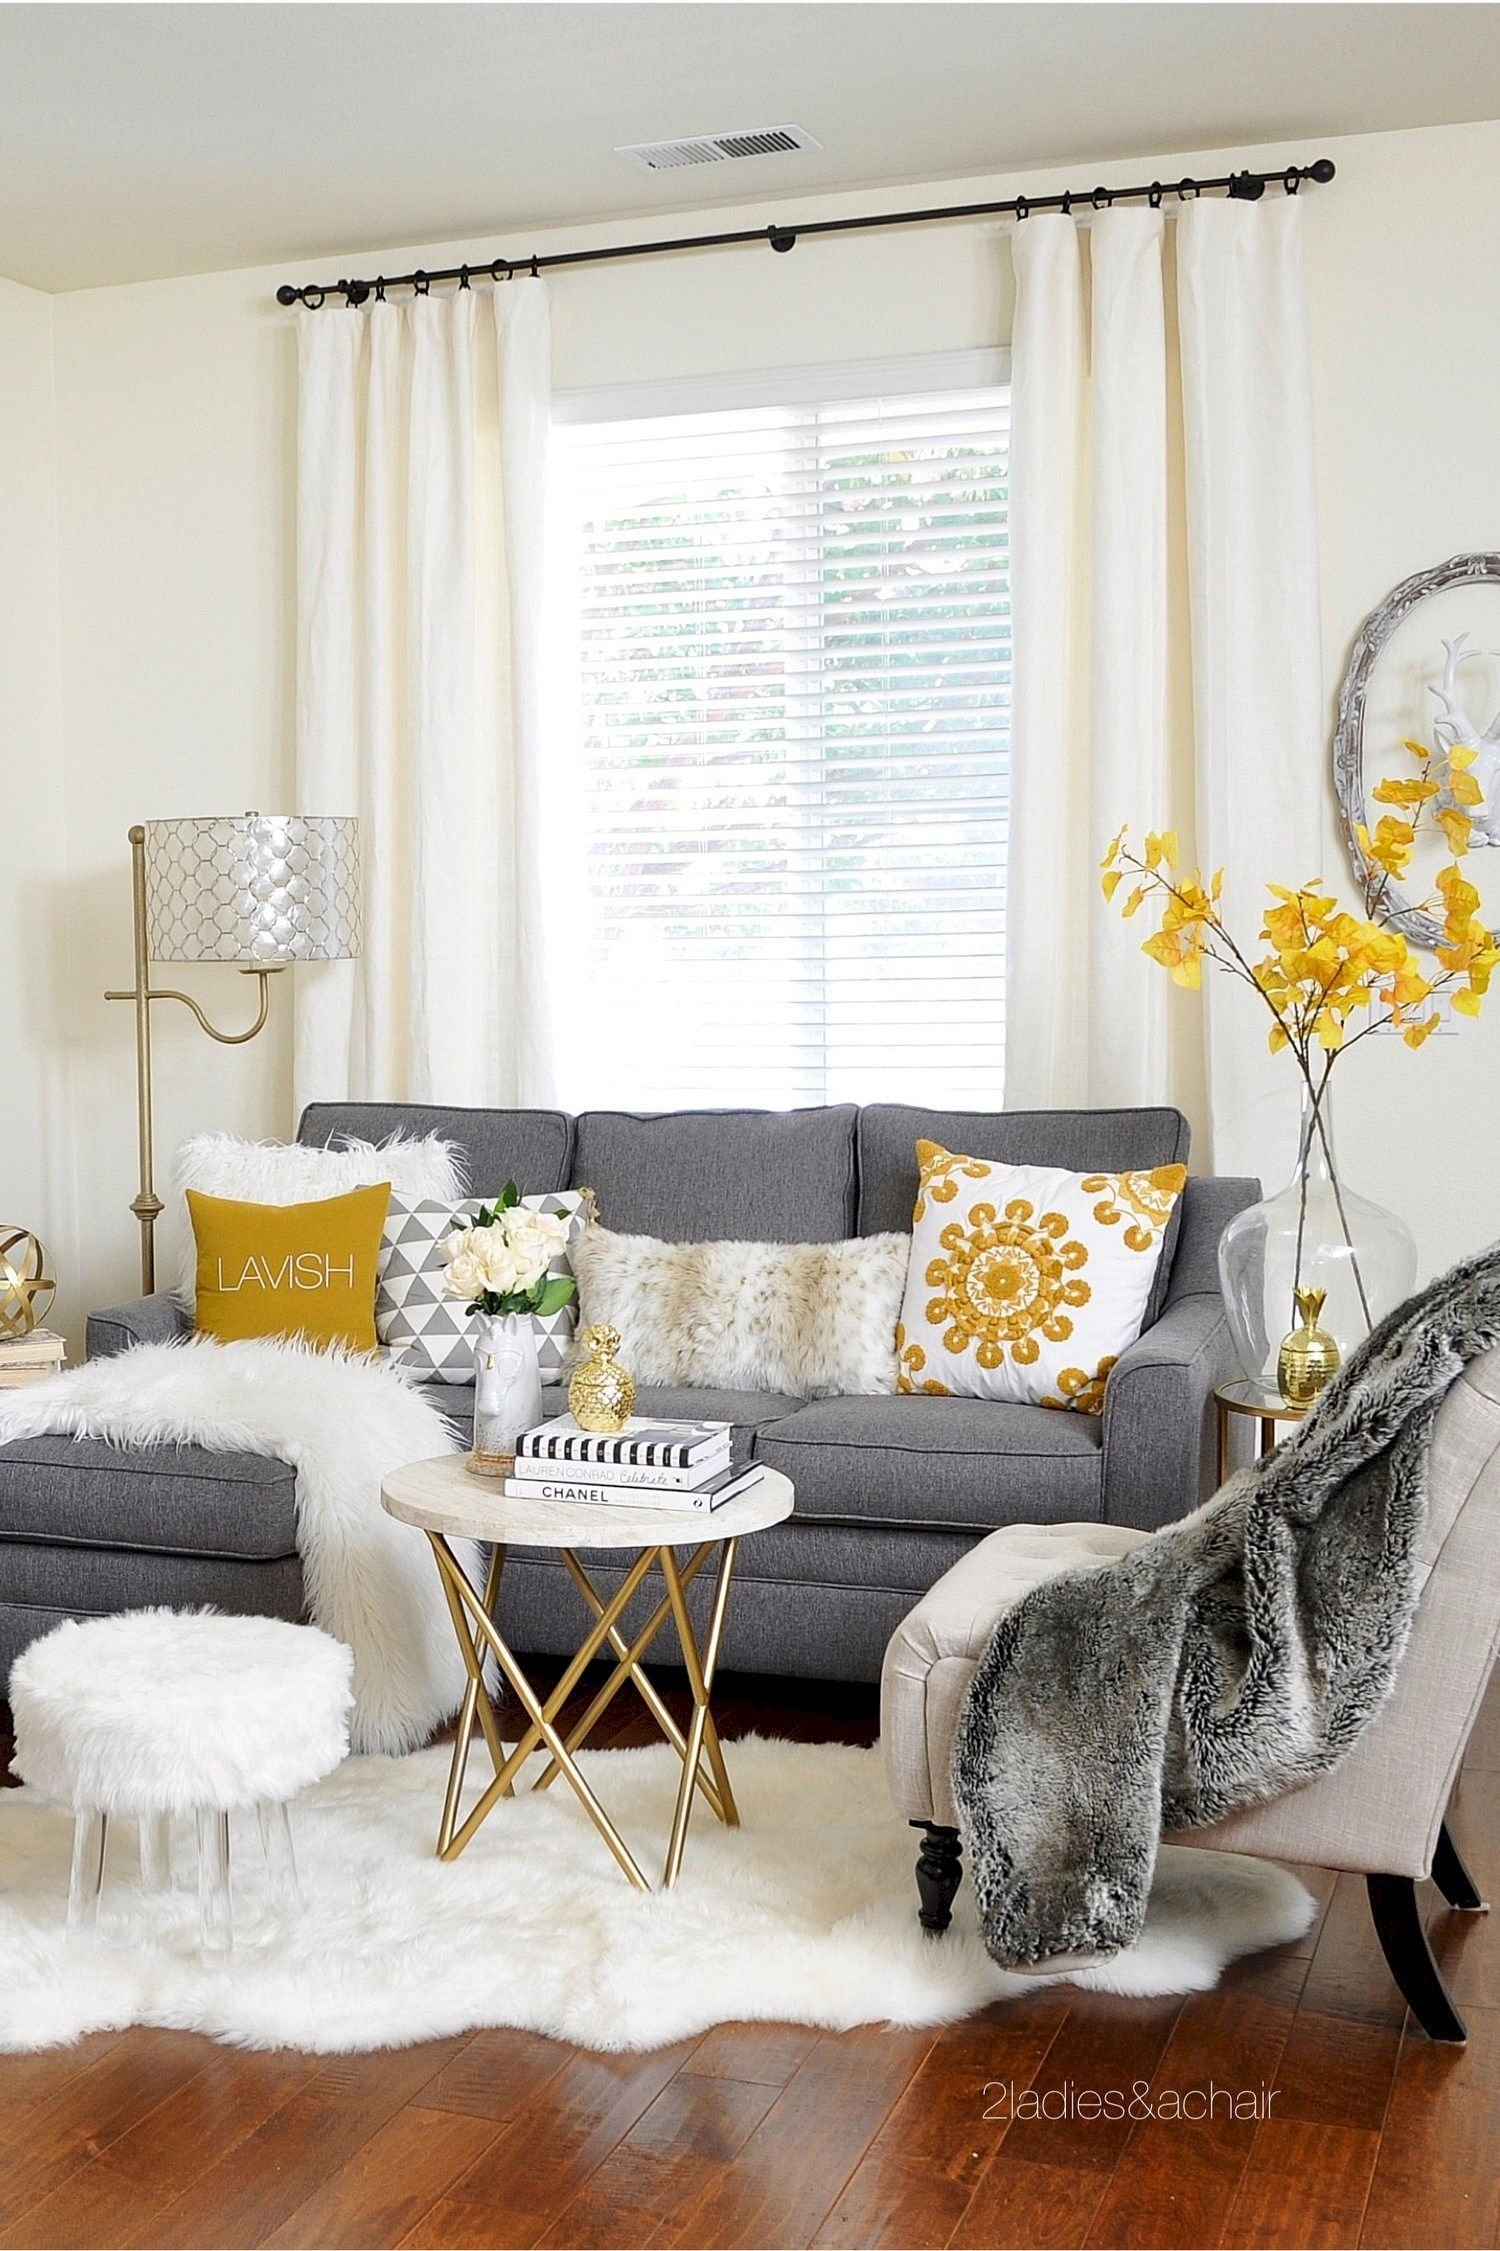 10 Awesome Design Ideas For Small Living Room 25 beautiful living room design ideas small living rooms small 6 2020